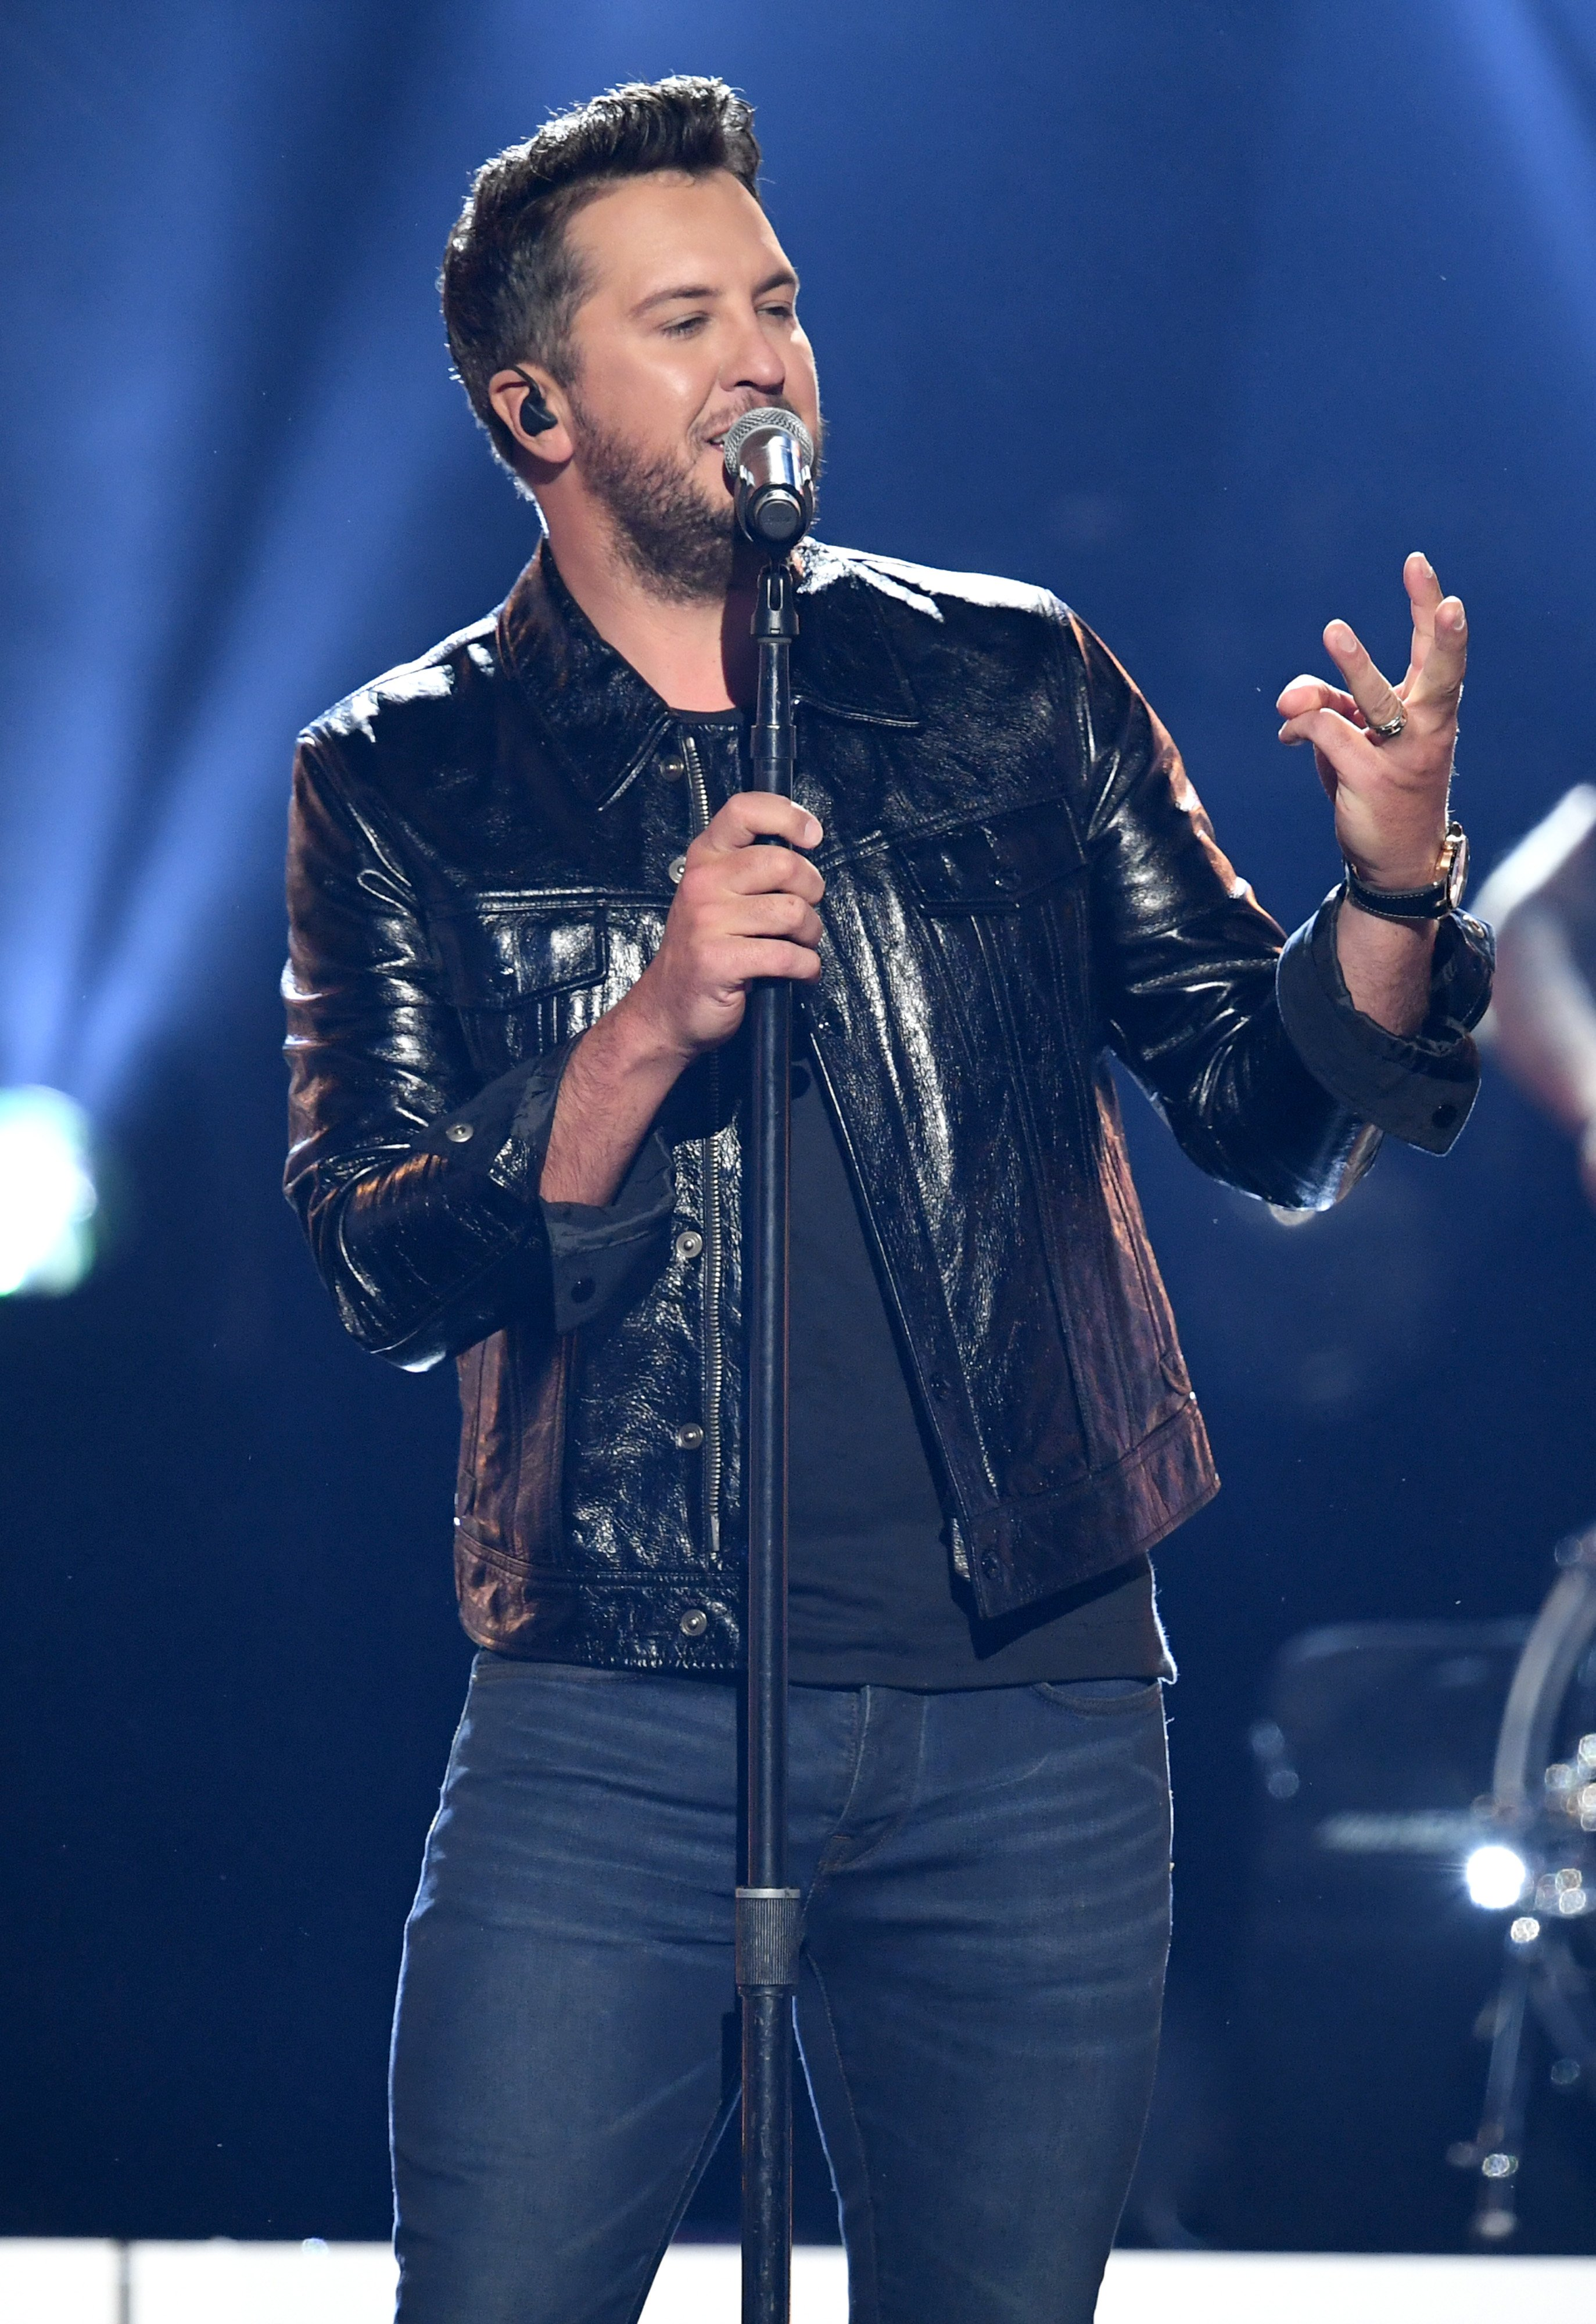 """Luke Bryan, who just released his 7th album,""""Born Here Die Here"""" shows energy while performing onstage. 